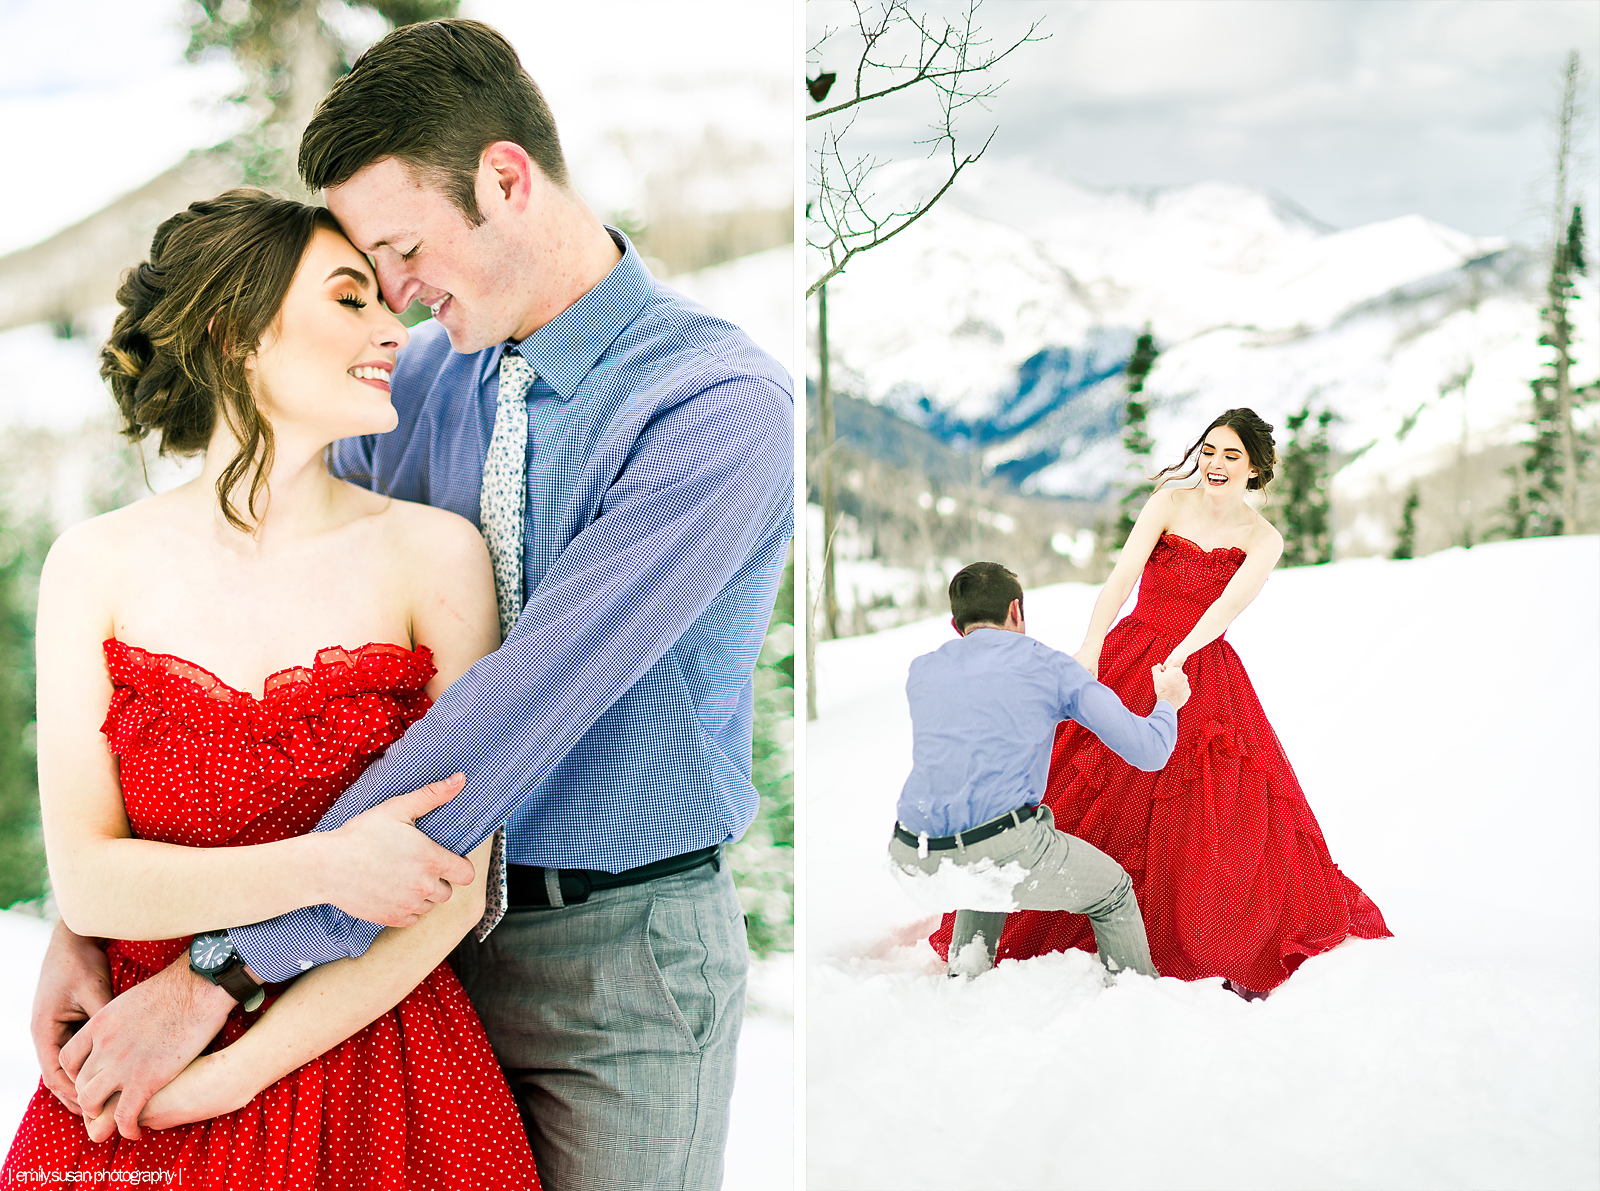 winter_red_dress_pictures_023.jpg